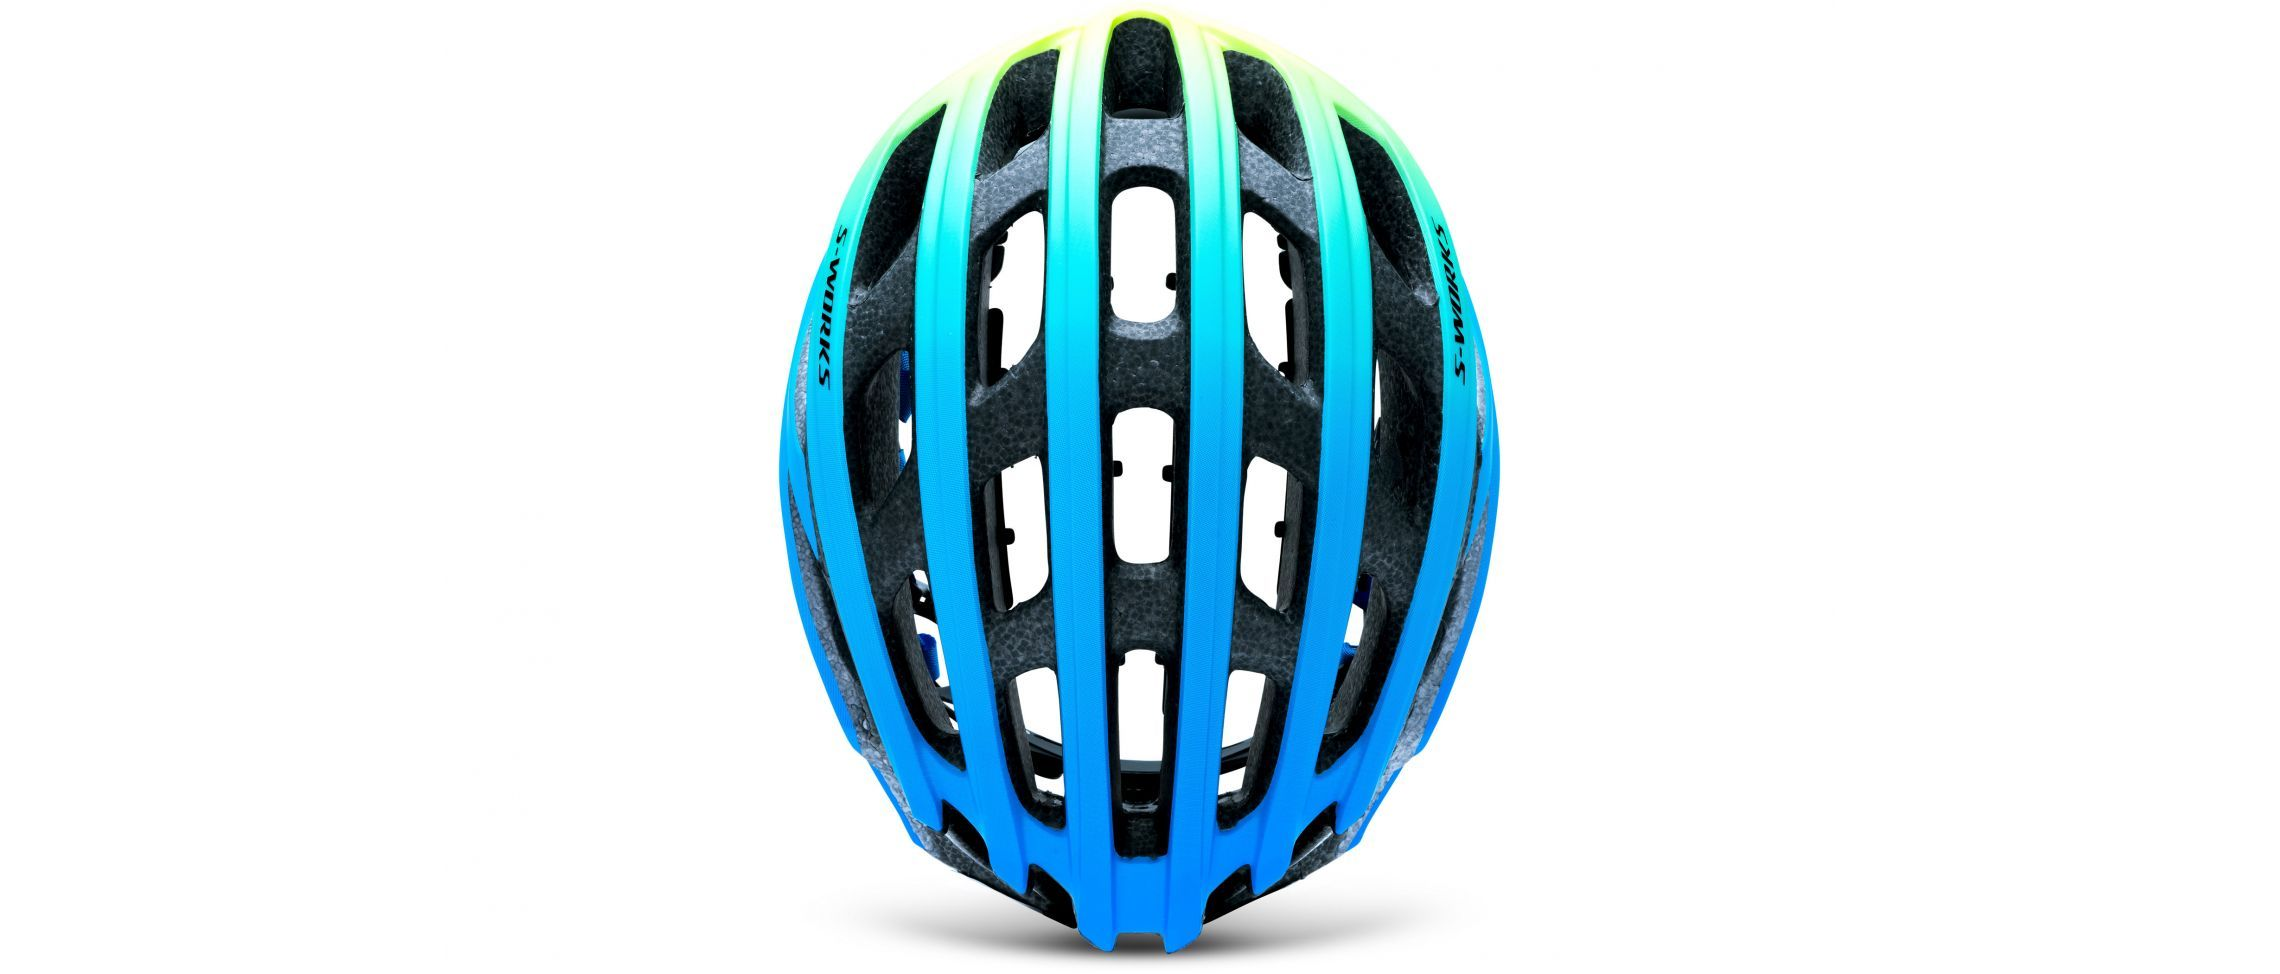 S-Works Prevail II Mips Casco Ciclismo Carretera Specialized Down Under 4 IBKBike.es